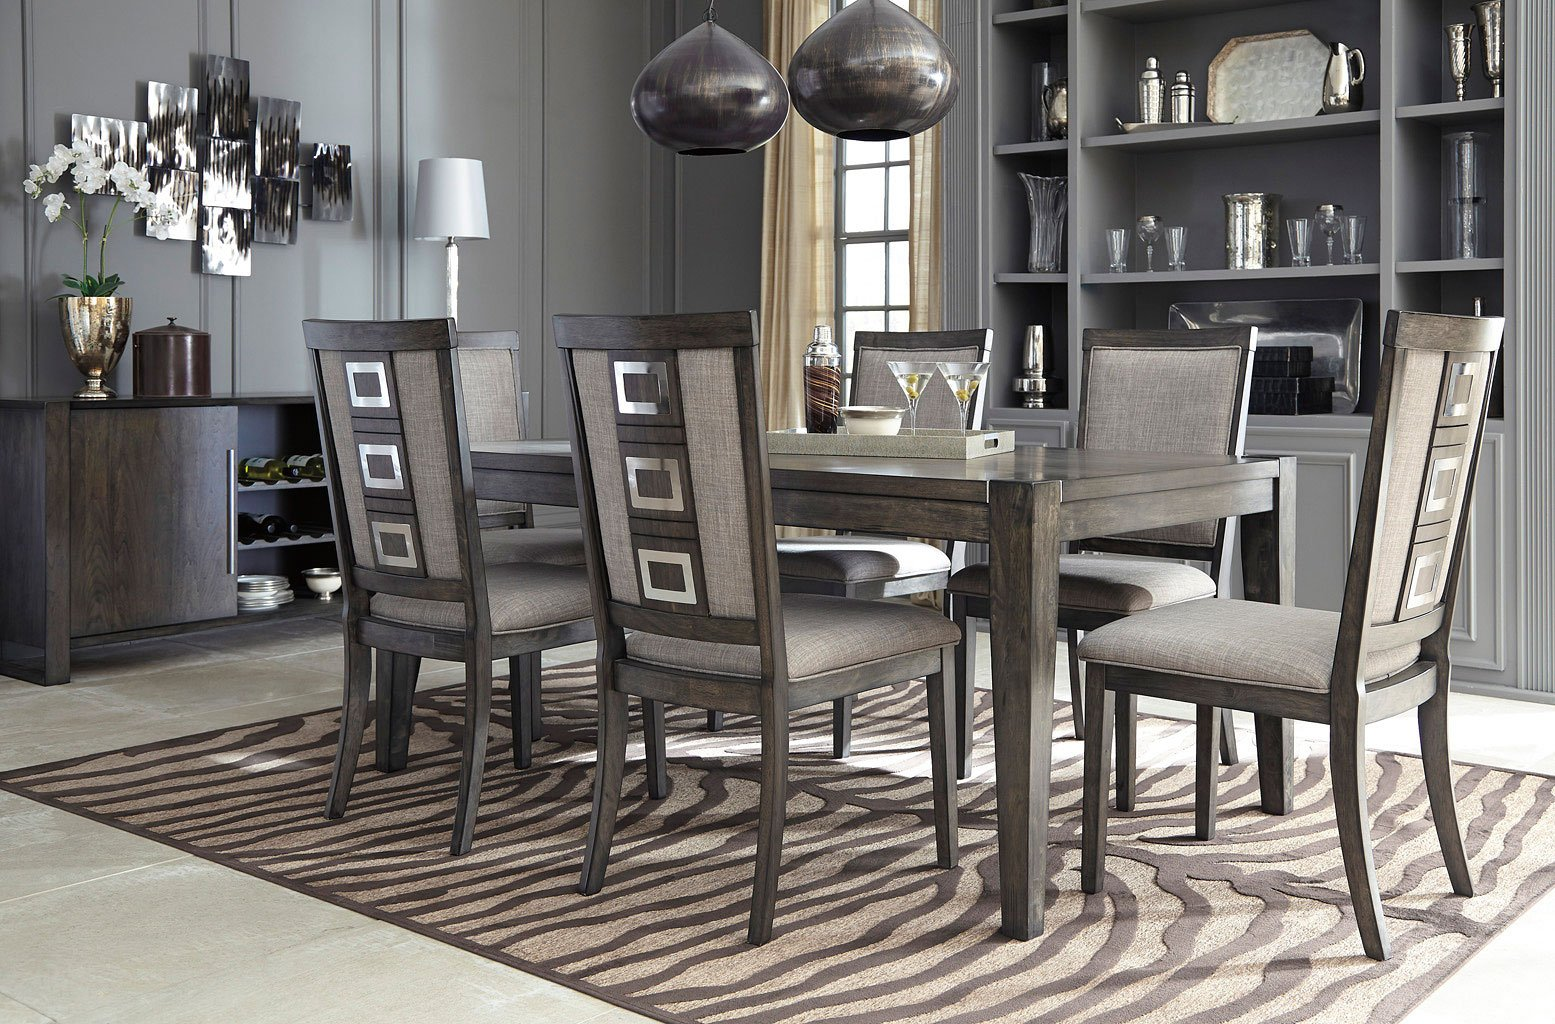 Chadoni Dining Room Set Formal Dining Sets Dining Room